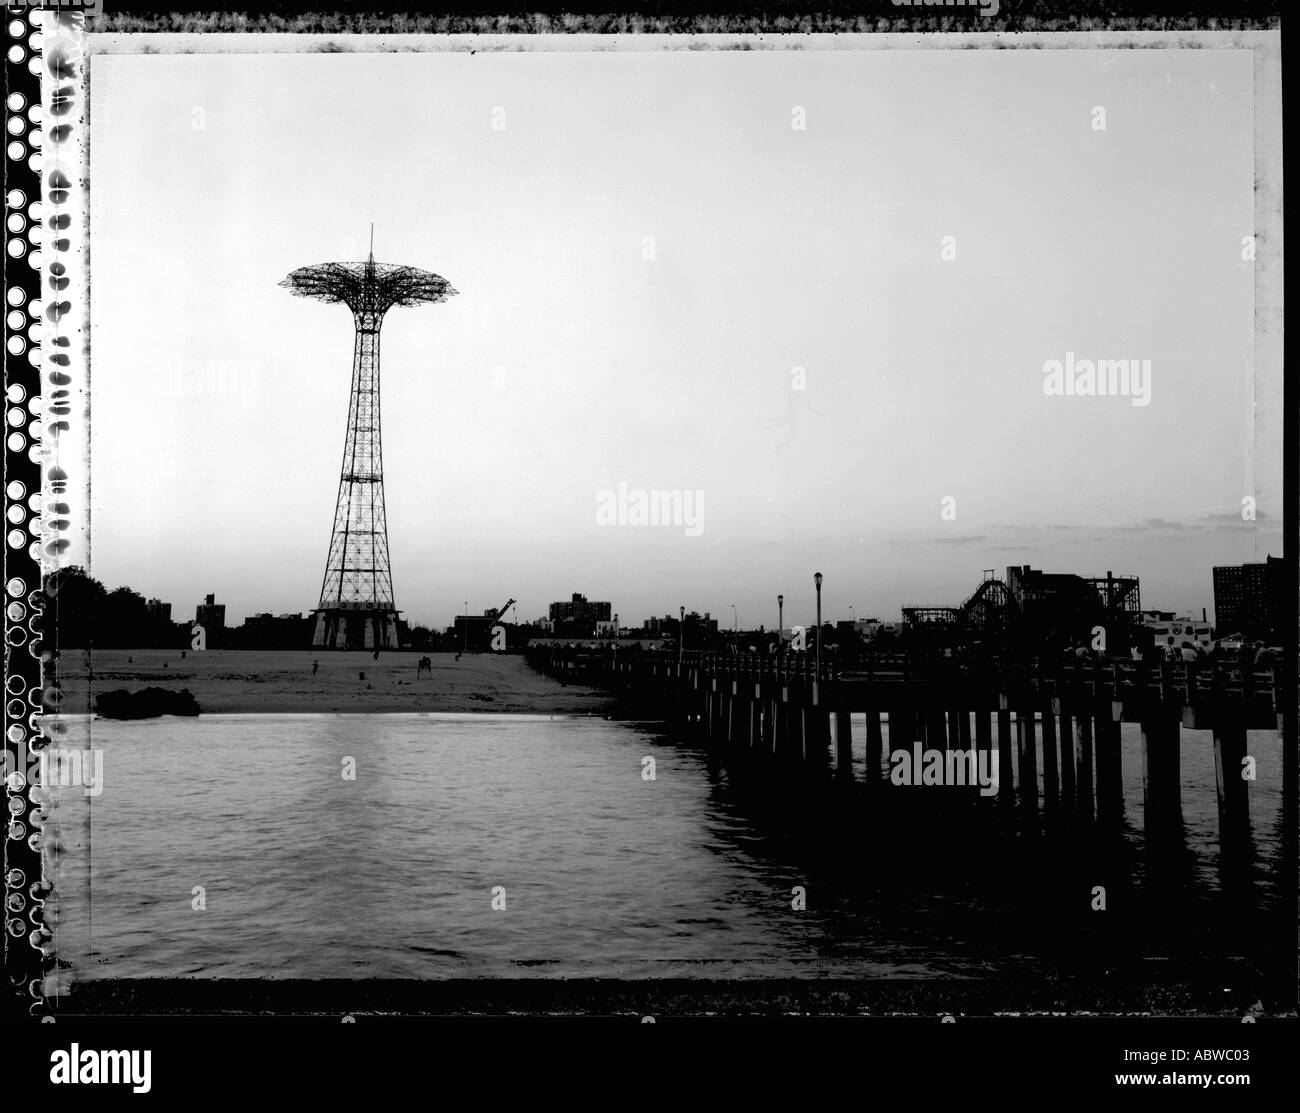 The pier at Coney Island. - Stock Image